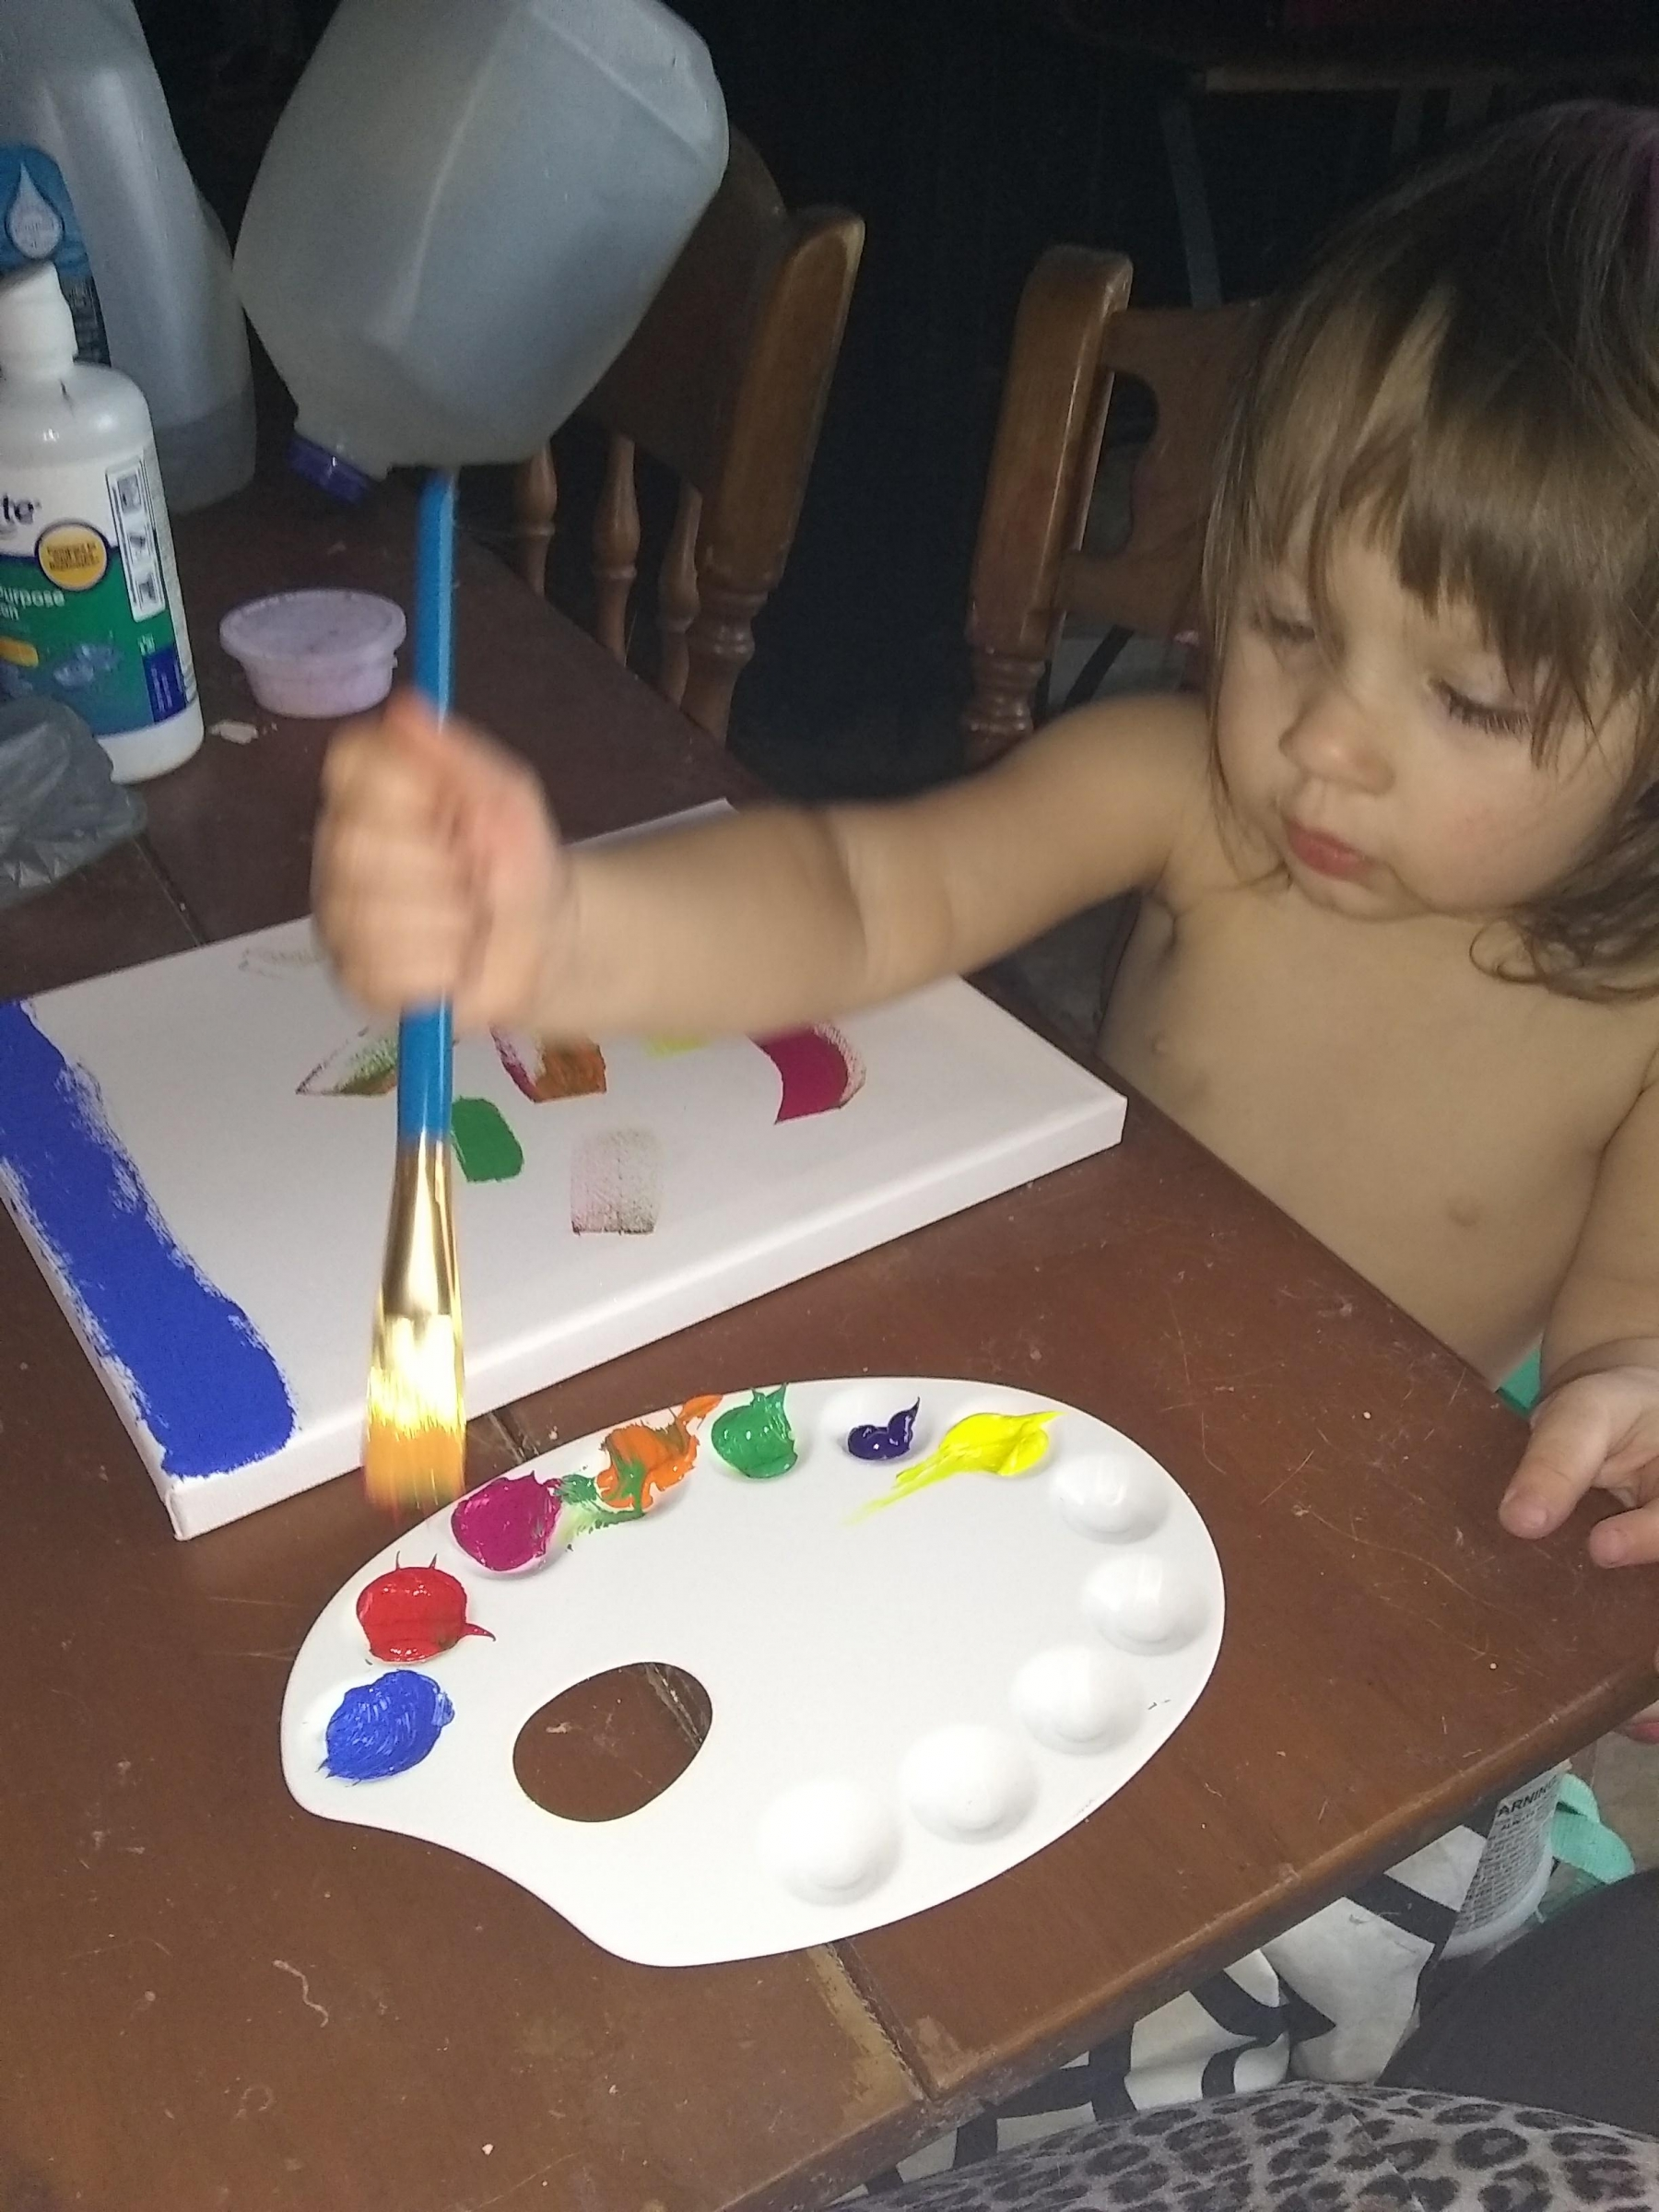 kid painting on canvas using oil painting set bought on amazon